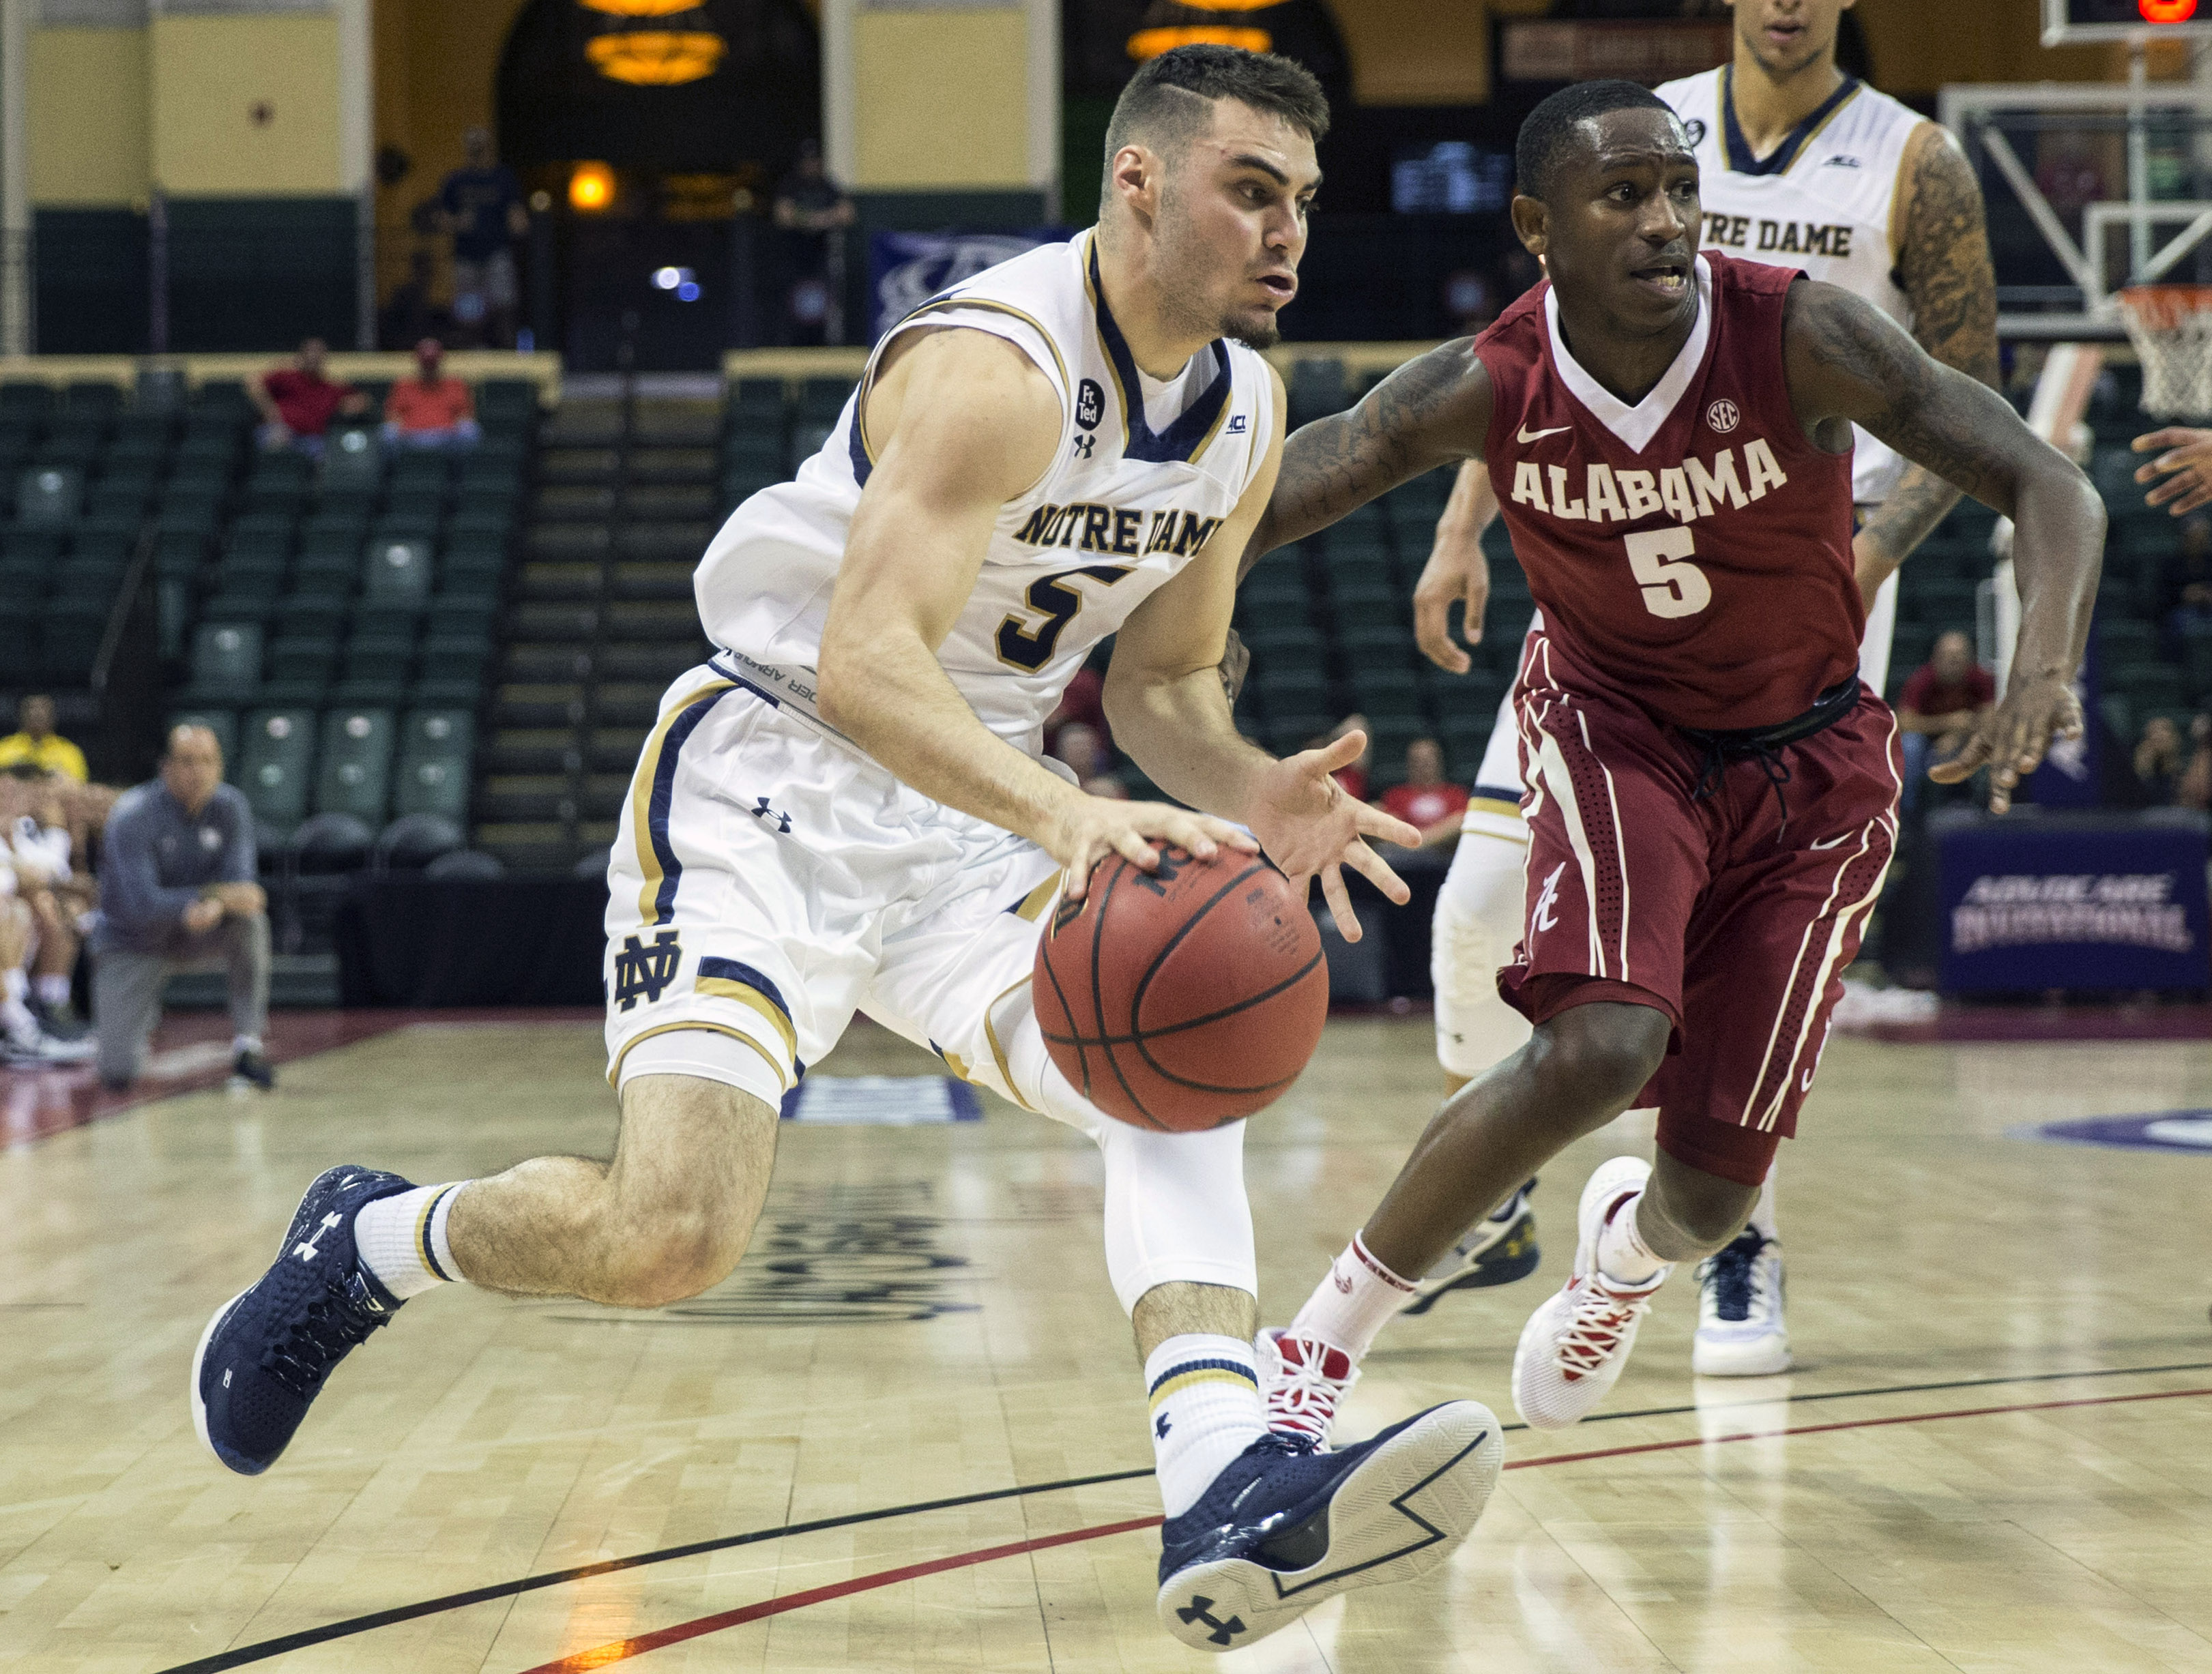 Notre Dame guard Matt Farrell, left, dribbles by Alabama guard Justin Coleman during the first half of an NCAA college basketball game Sunday, Nov. 29, 2015, in Orlando, Fla. (AP Photo/Willie J. Allen Jr.)